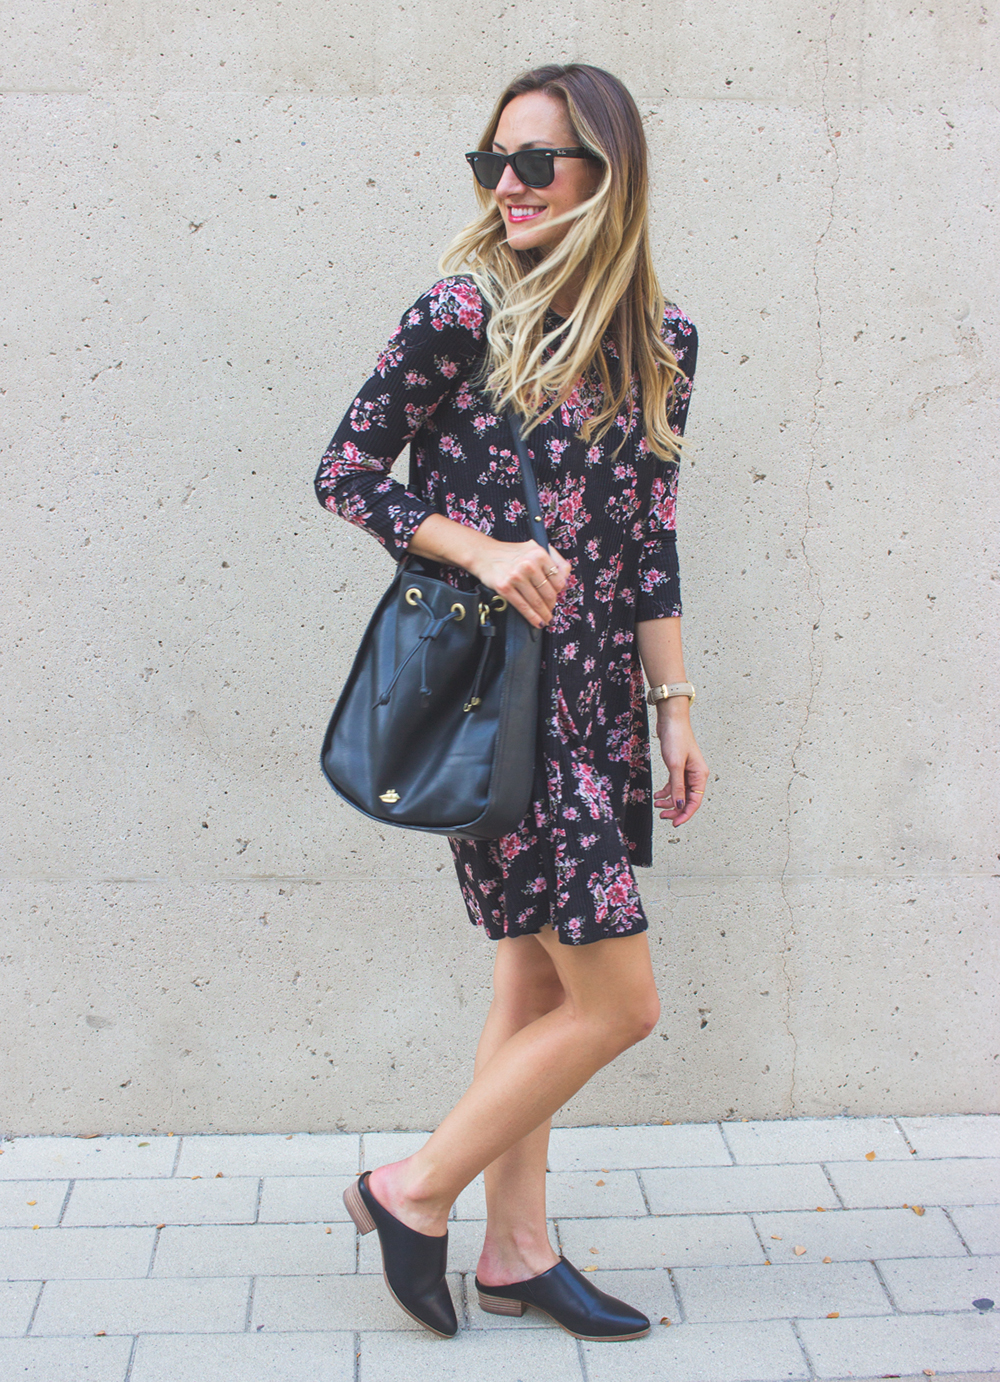 livvyland-blog-olivia-watson-lush-floral-black-shift-dress-brahmin-bucket-bag-ray-ban-wayfarer-sunglasses-madewell-slip-on-mules-9